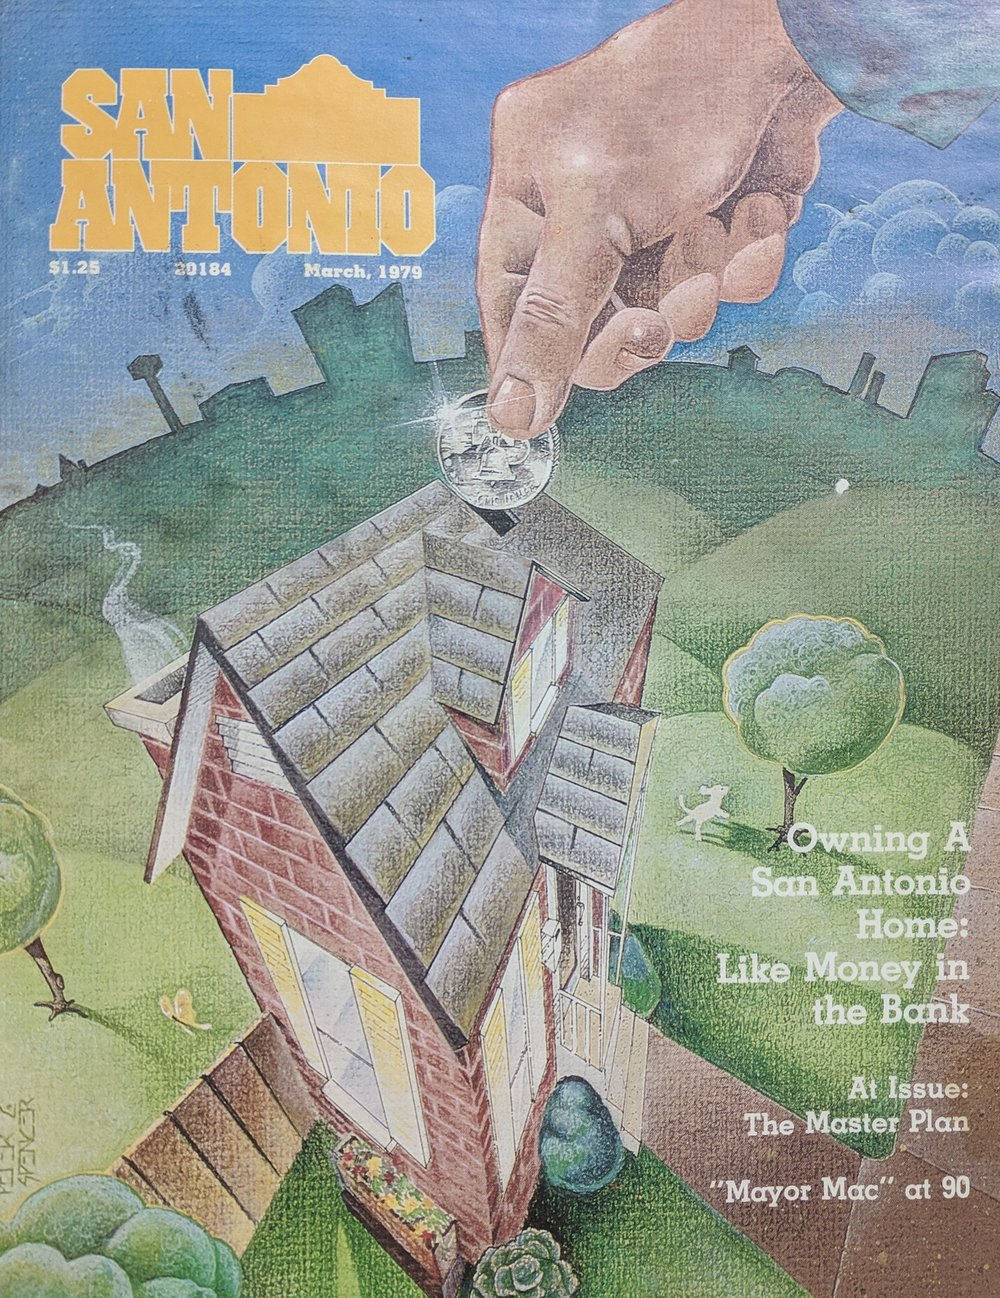 Cover Design: San Antonio Magazine - Peter C. Spencer mixed media published cover for San Antonio Magazine. Peter C. Spencer original hand-drawn illustration. Property of Peter C. Spencer (c).